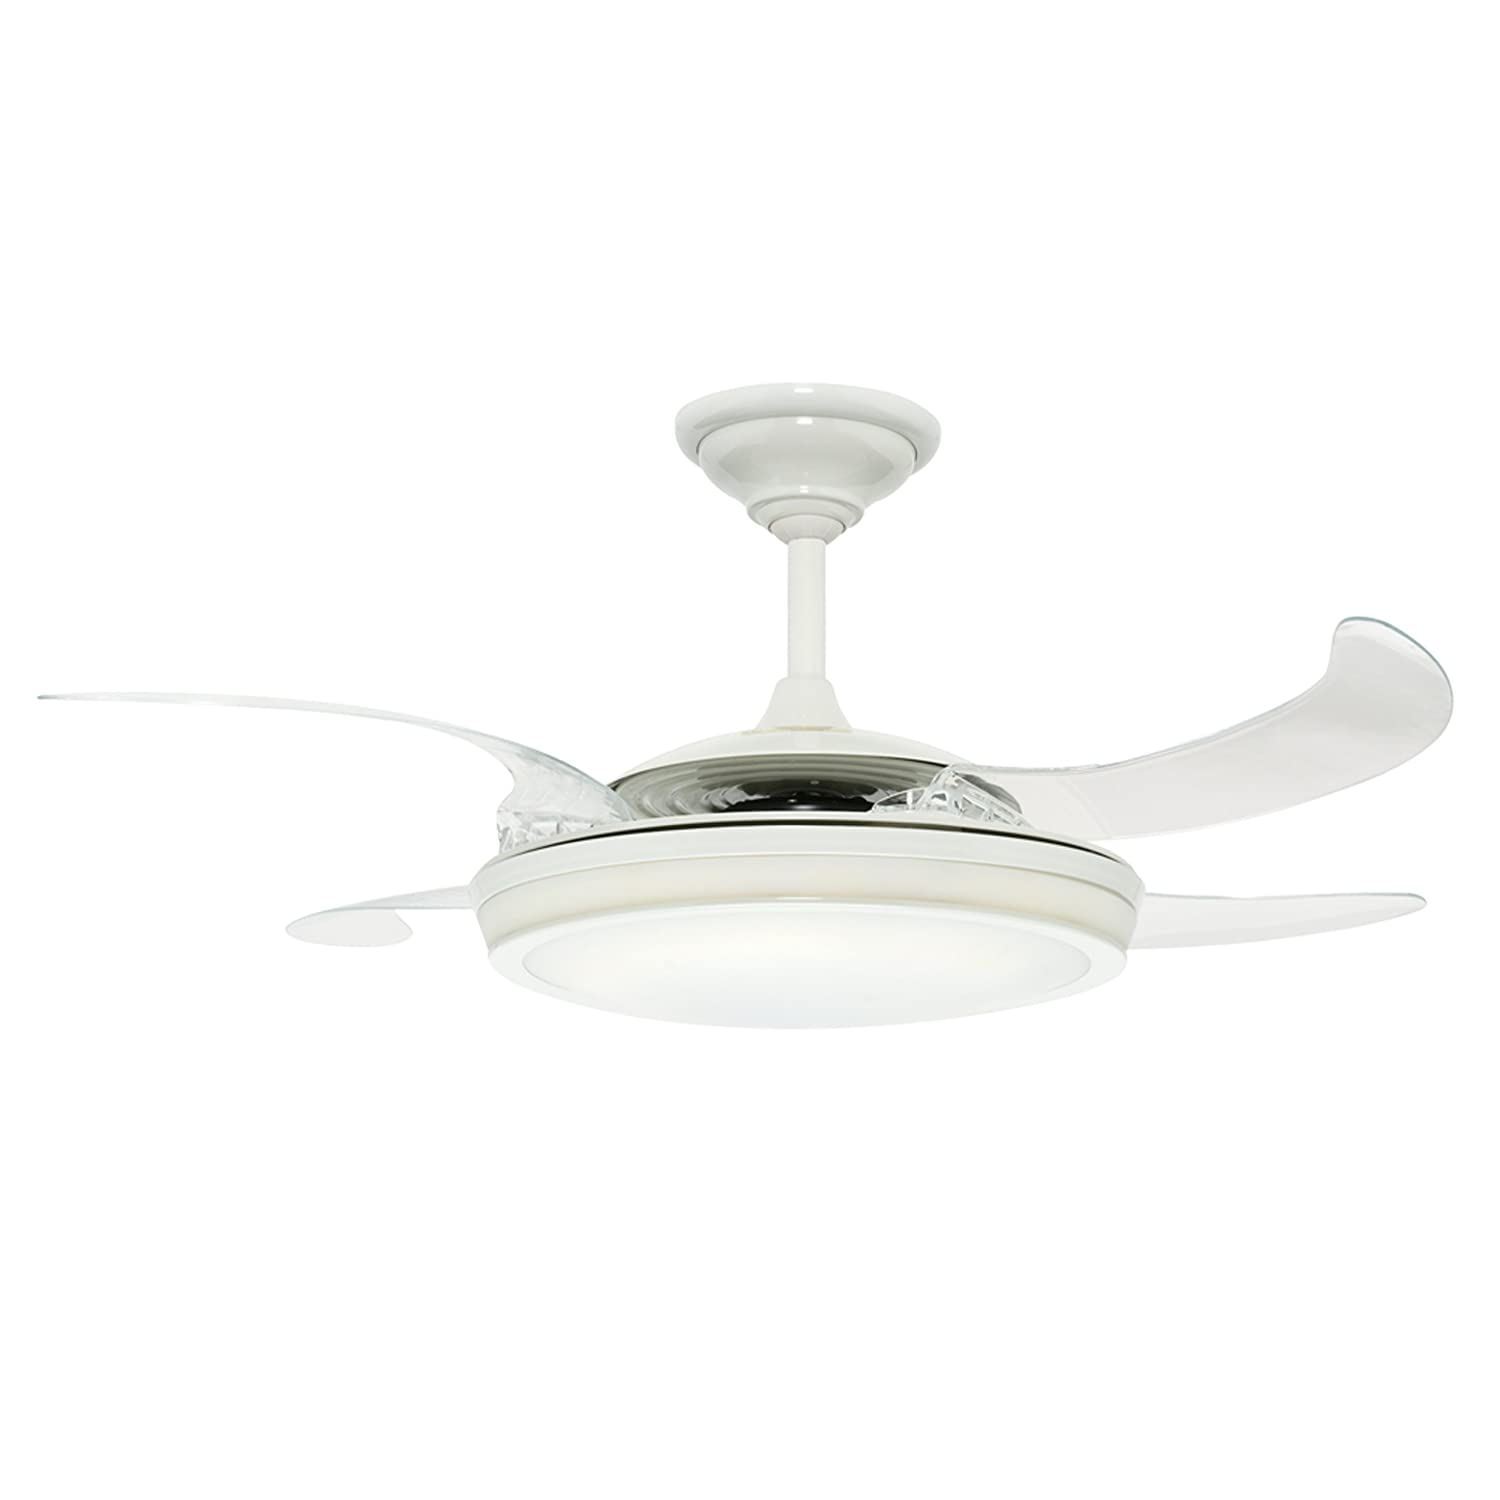 Hunter 21427 Fanaway 48-Inch Ceiling Fan